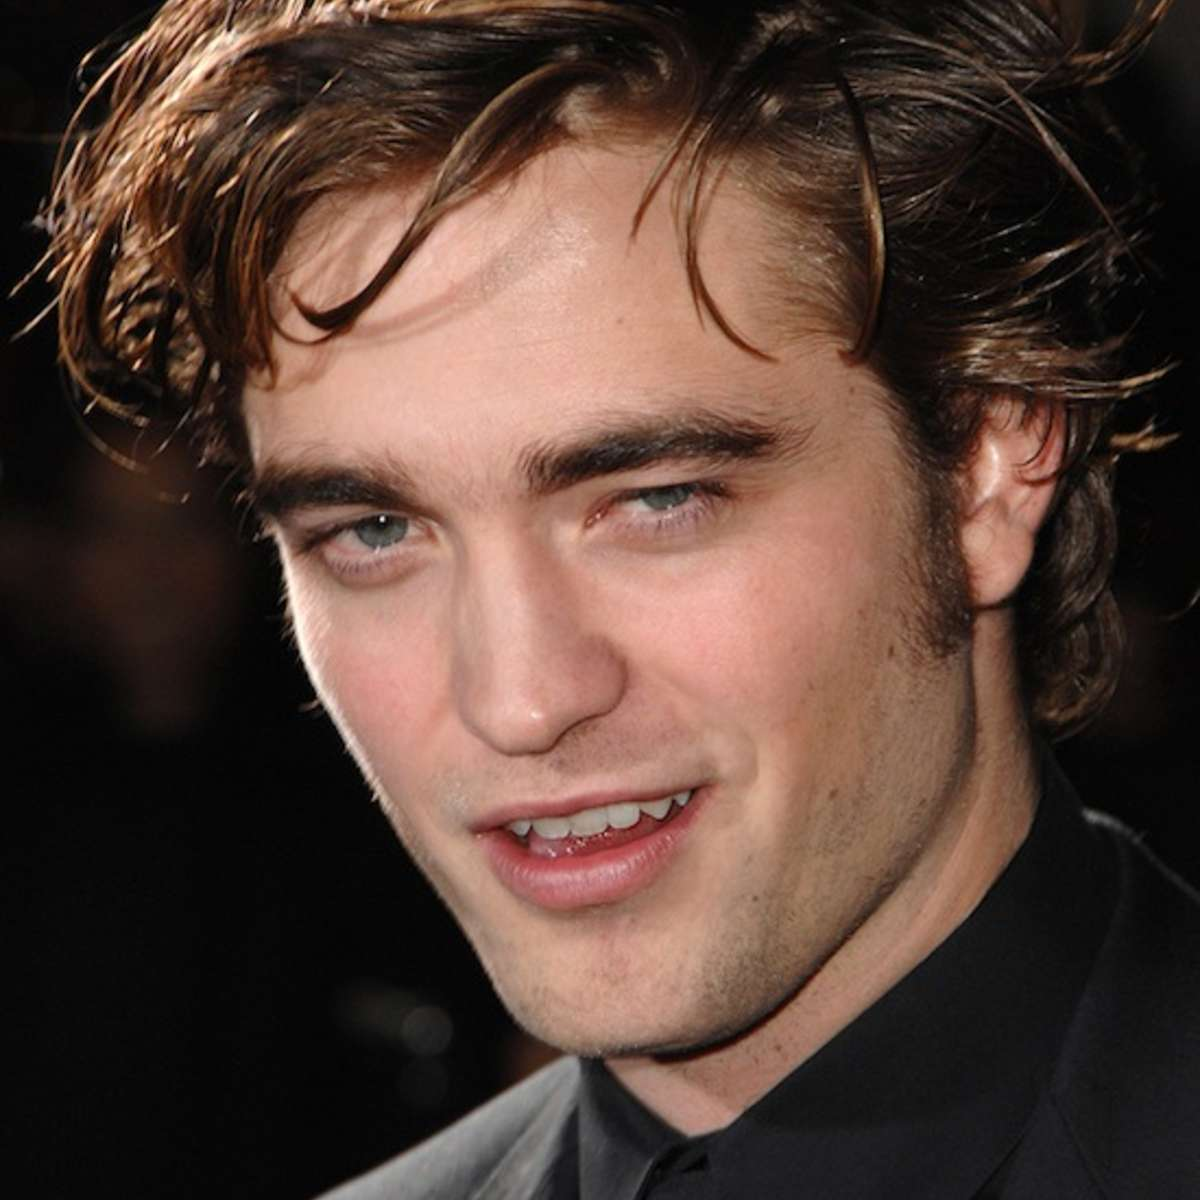 robert_pattinson_smirk.jpg